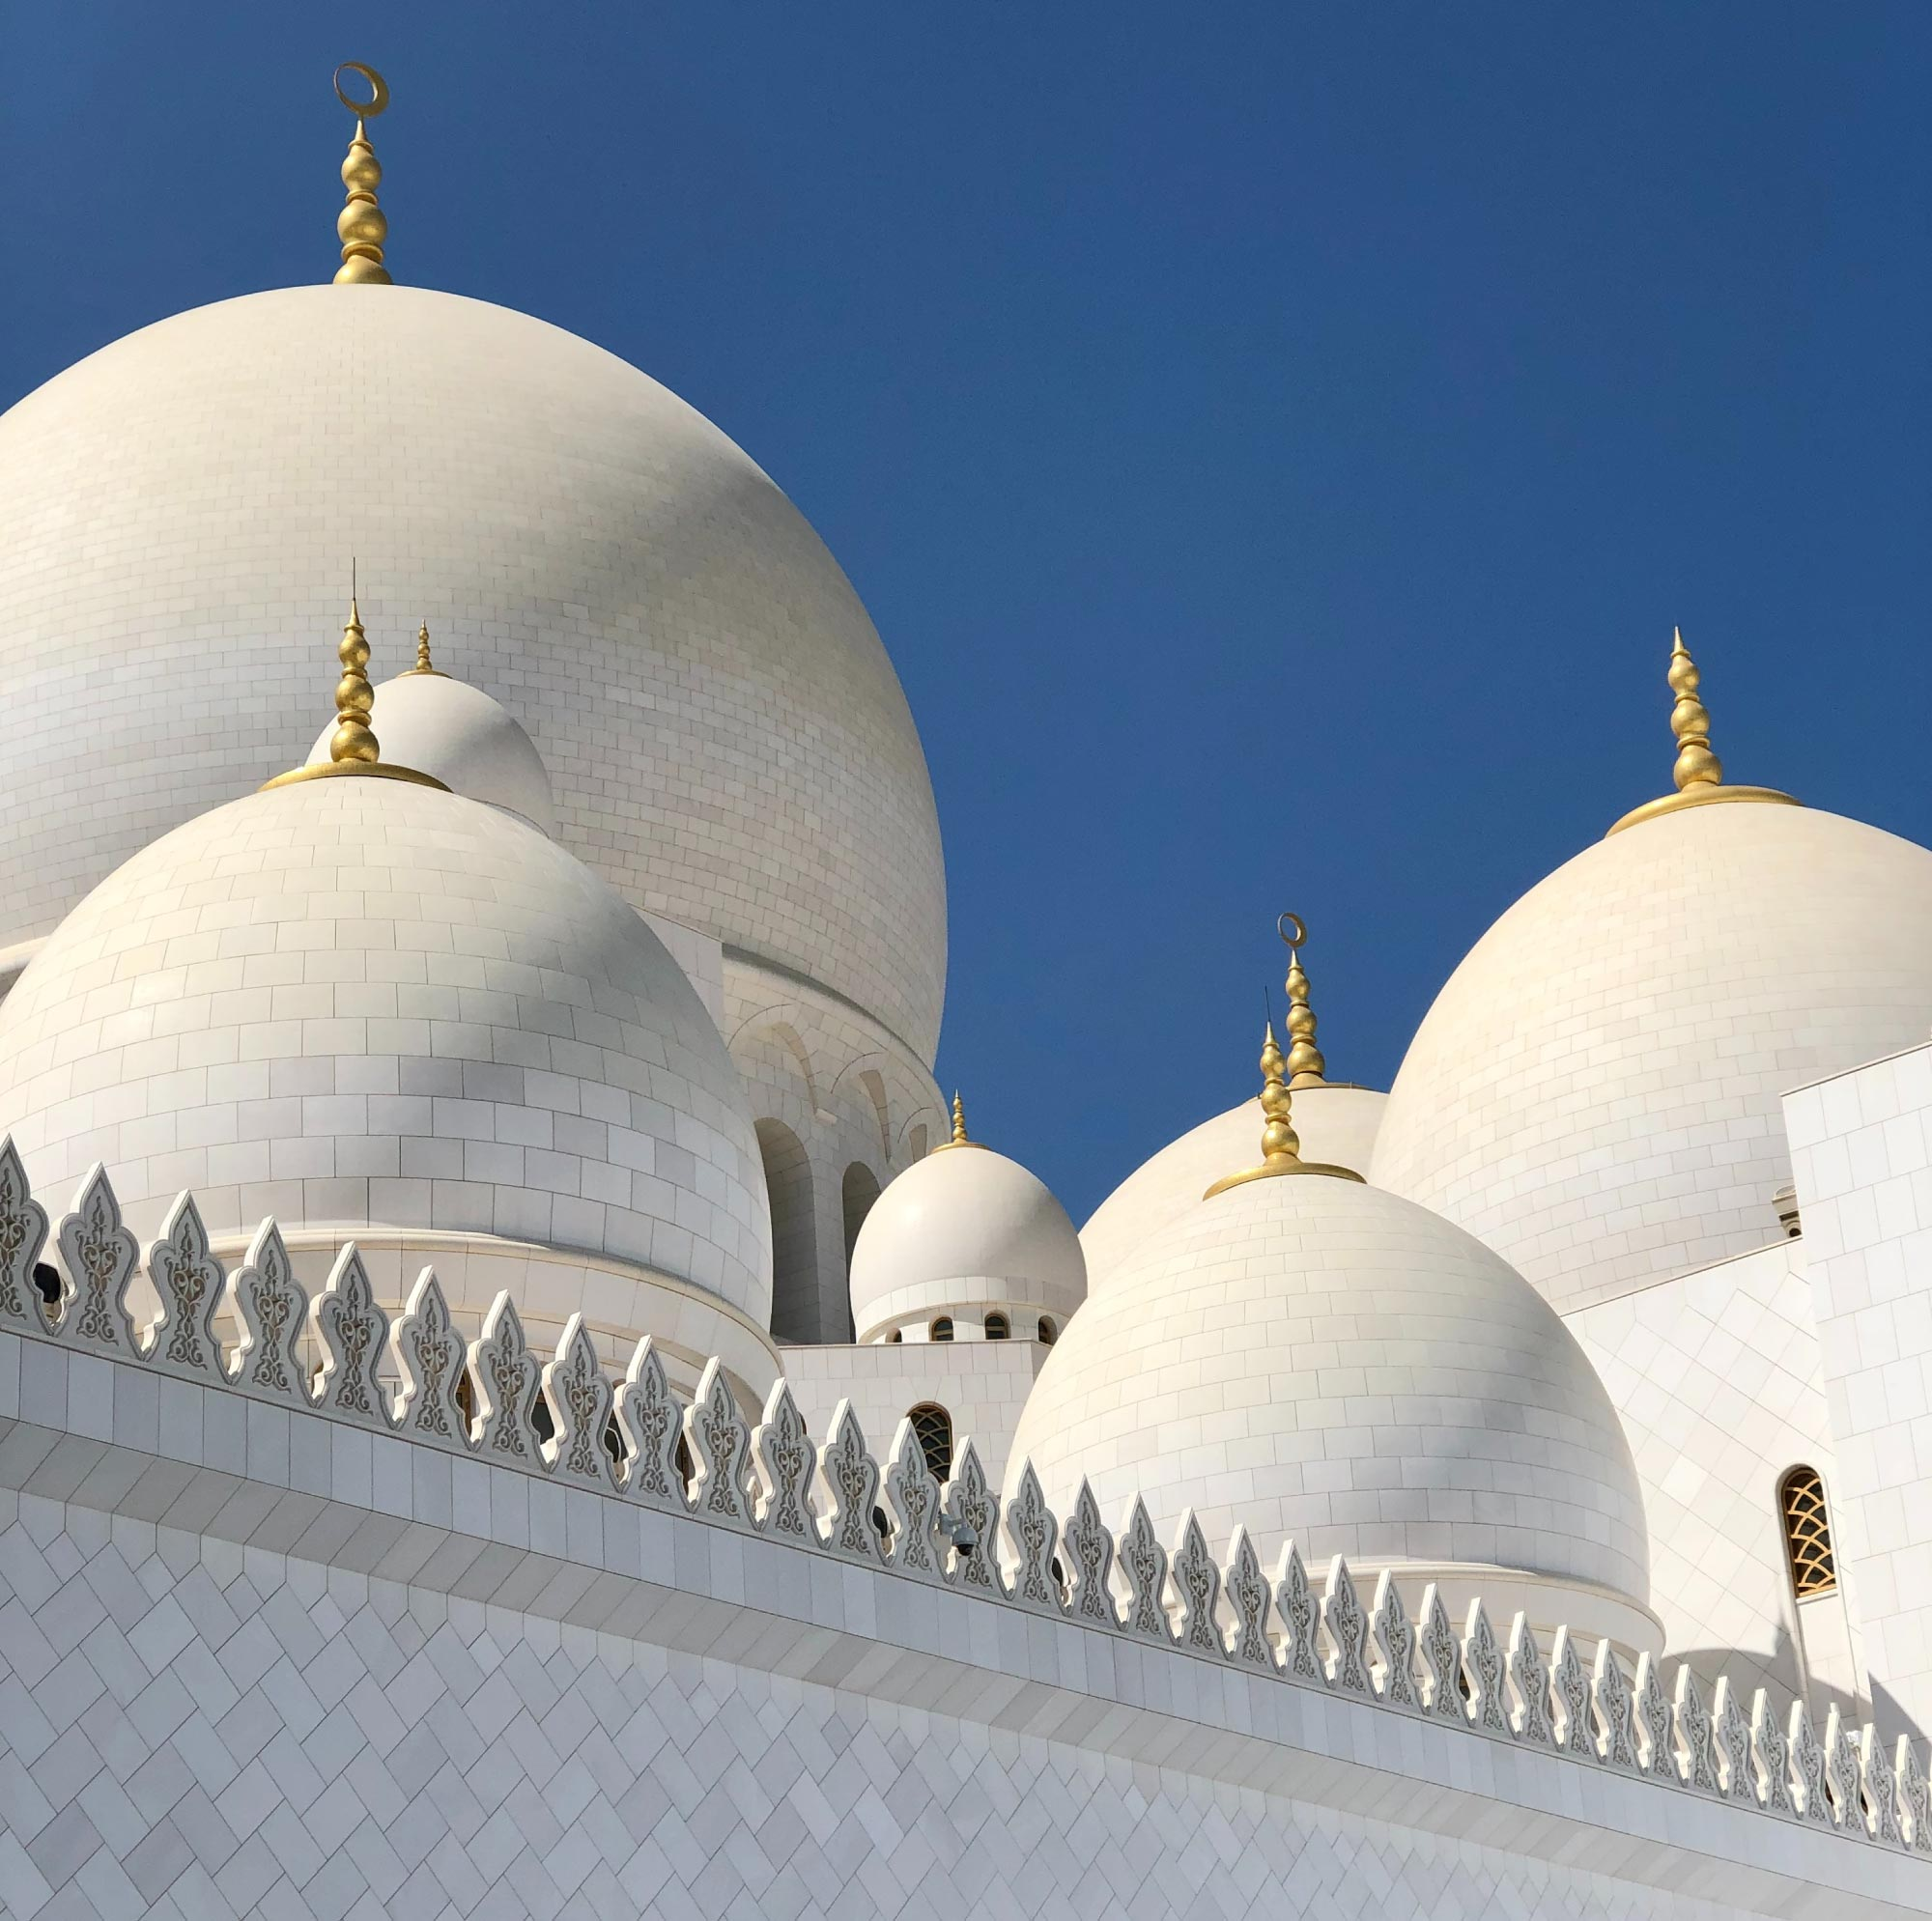 a close up shot of the brilliant-white domes of the mosque in abu dhabi